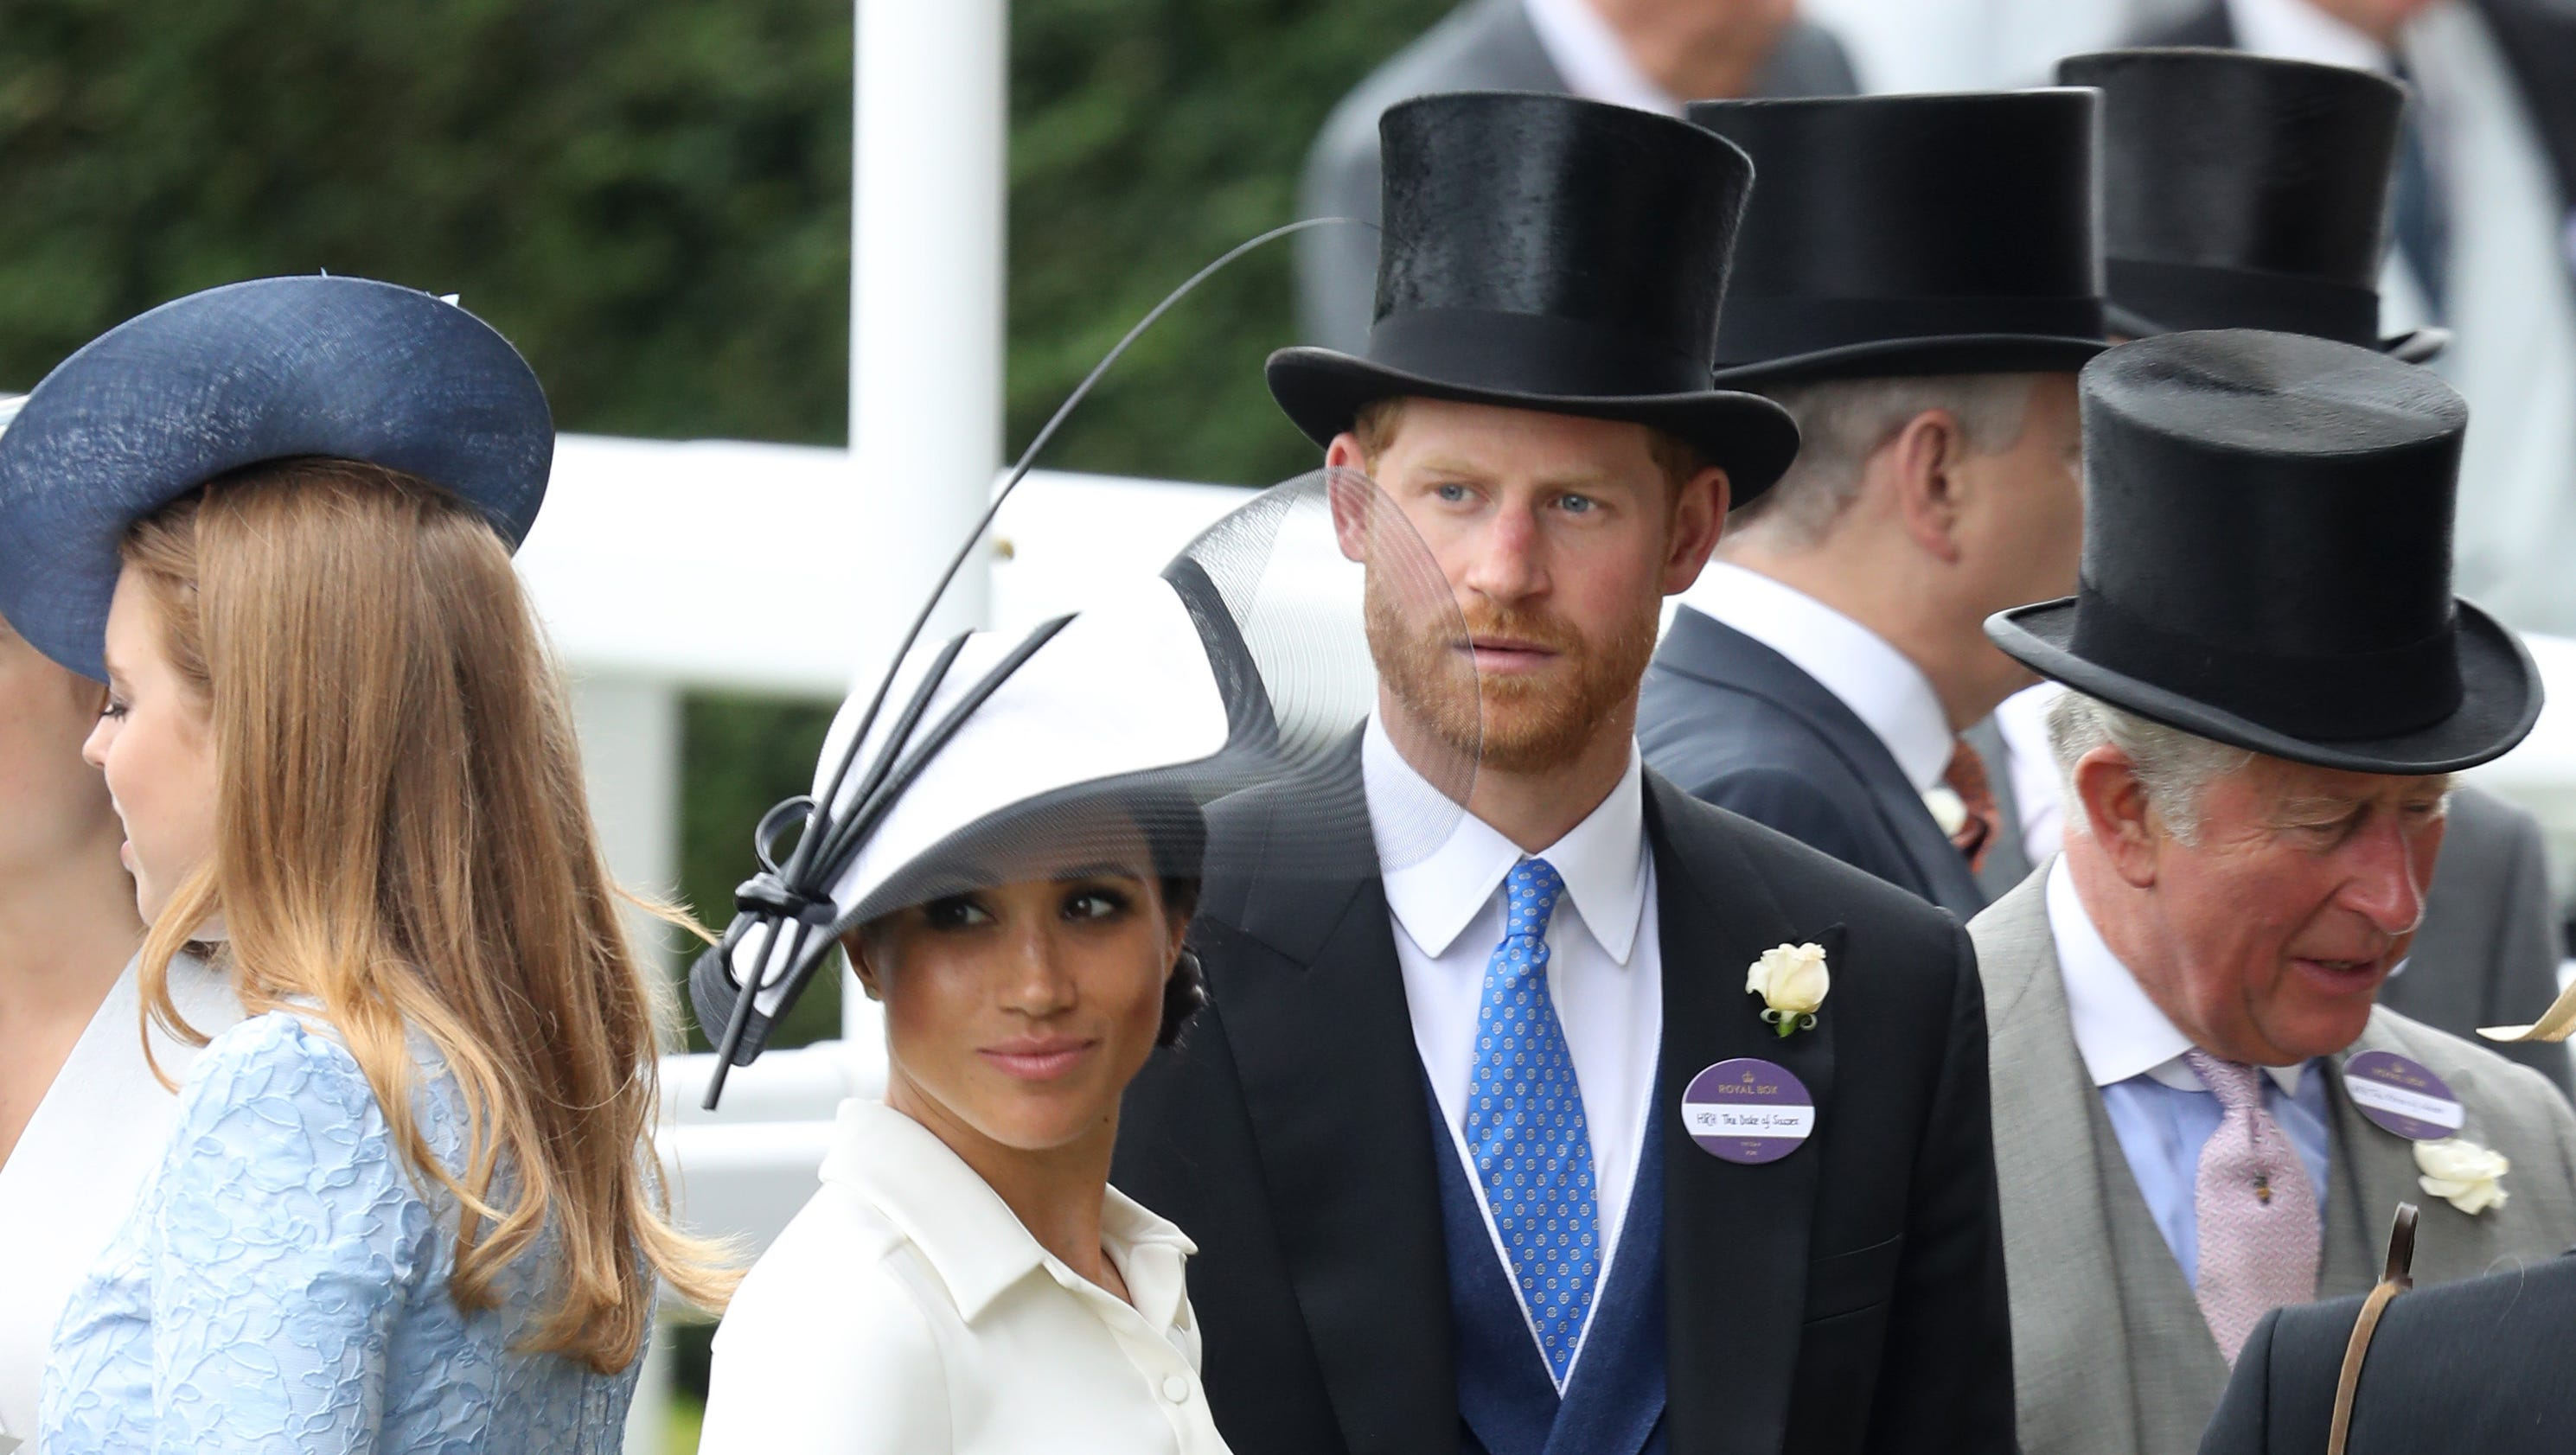 Duchess Meghan makes Royal Ascot debut in white dress from go-to label Givenchy